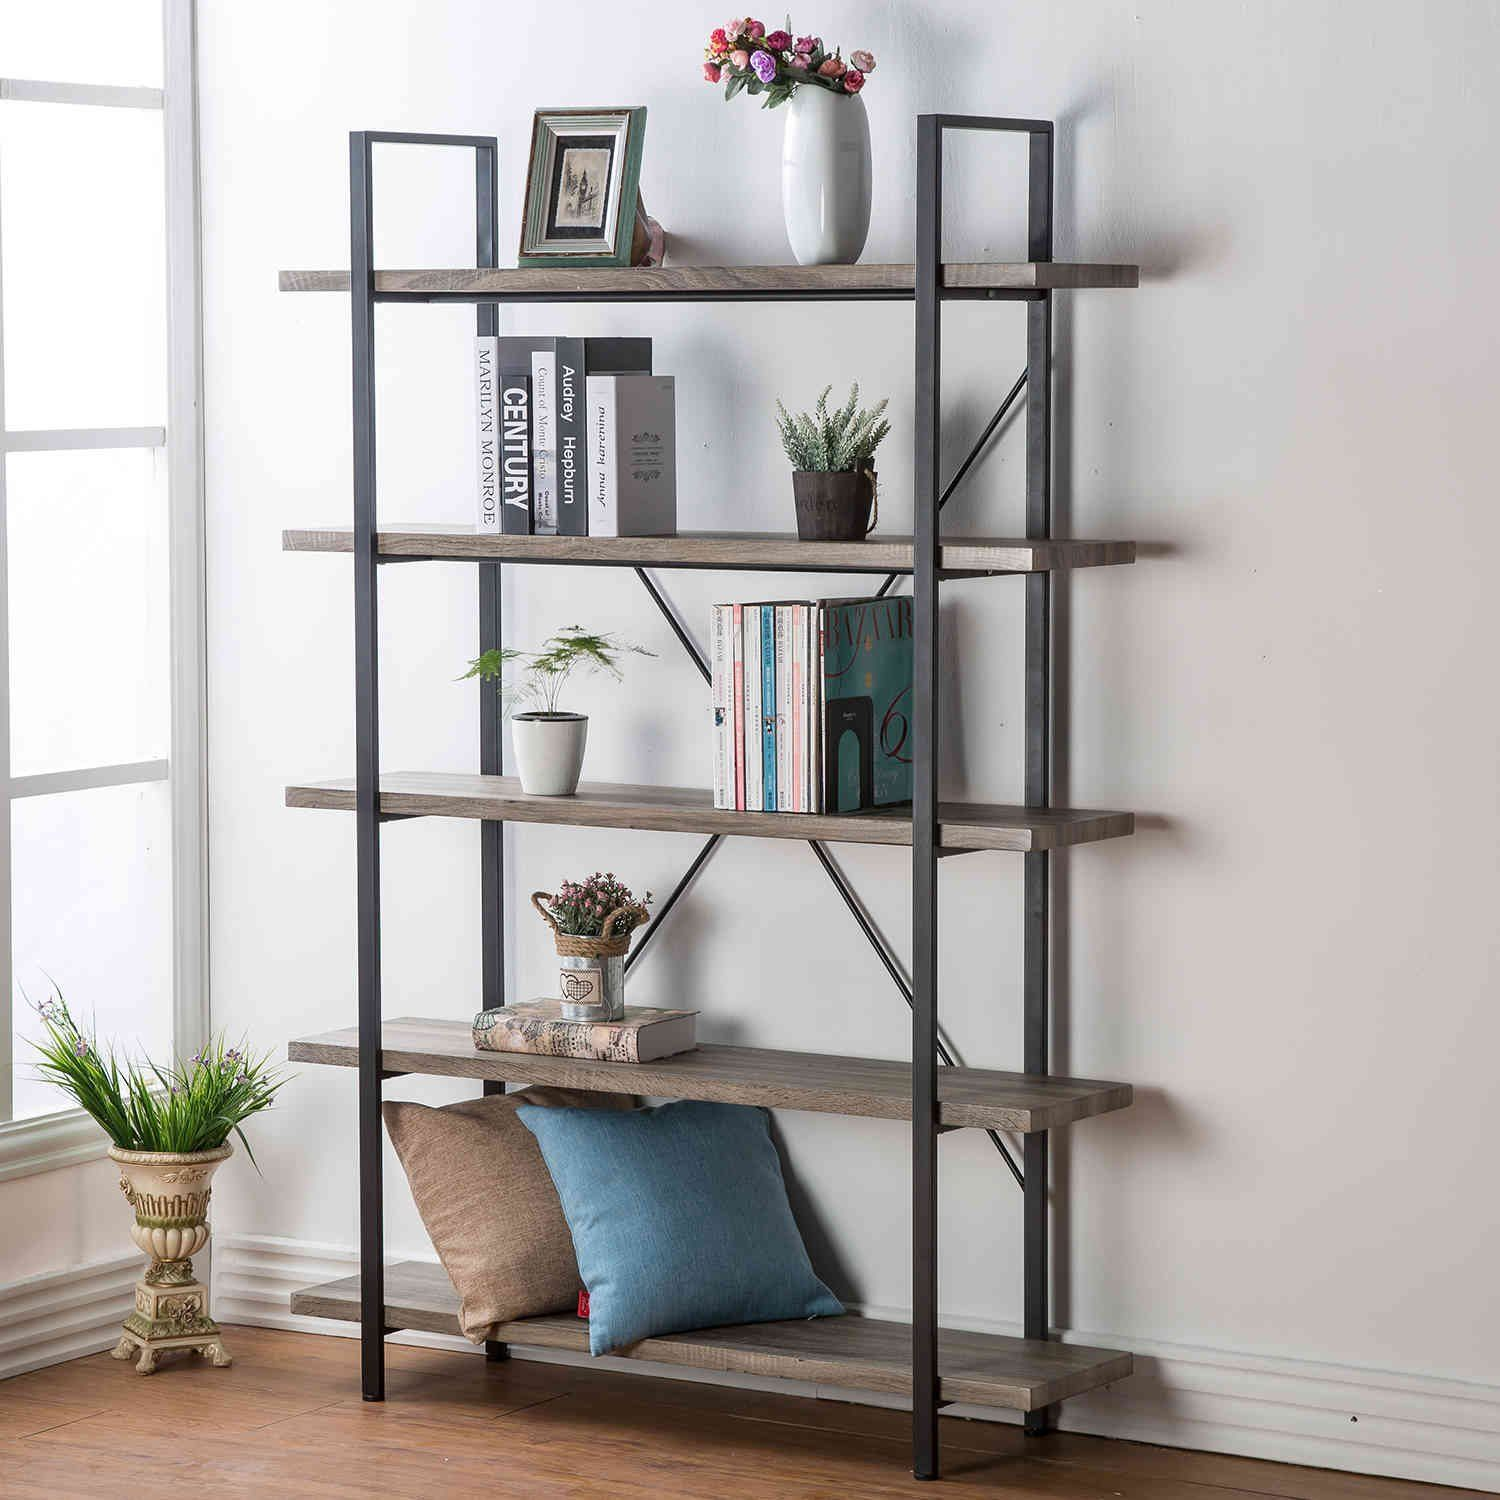 HSH Furniture Vintage Industrial Bookcase, Wood and Metal Rustic Open  Bookshelf, Dark Oak